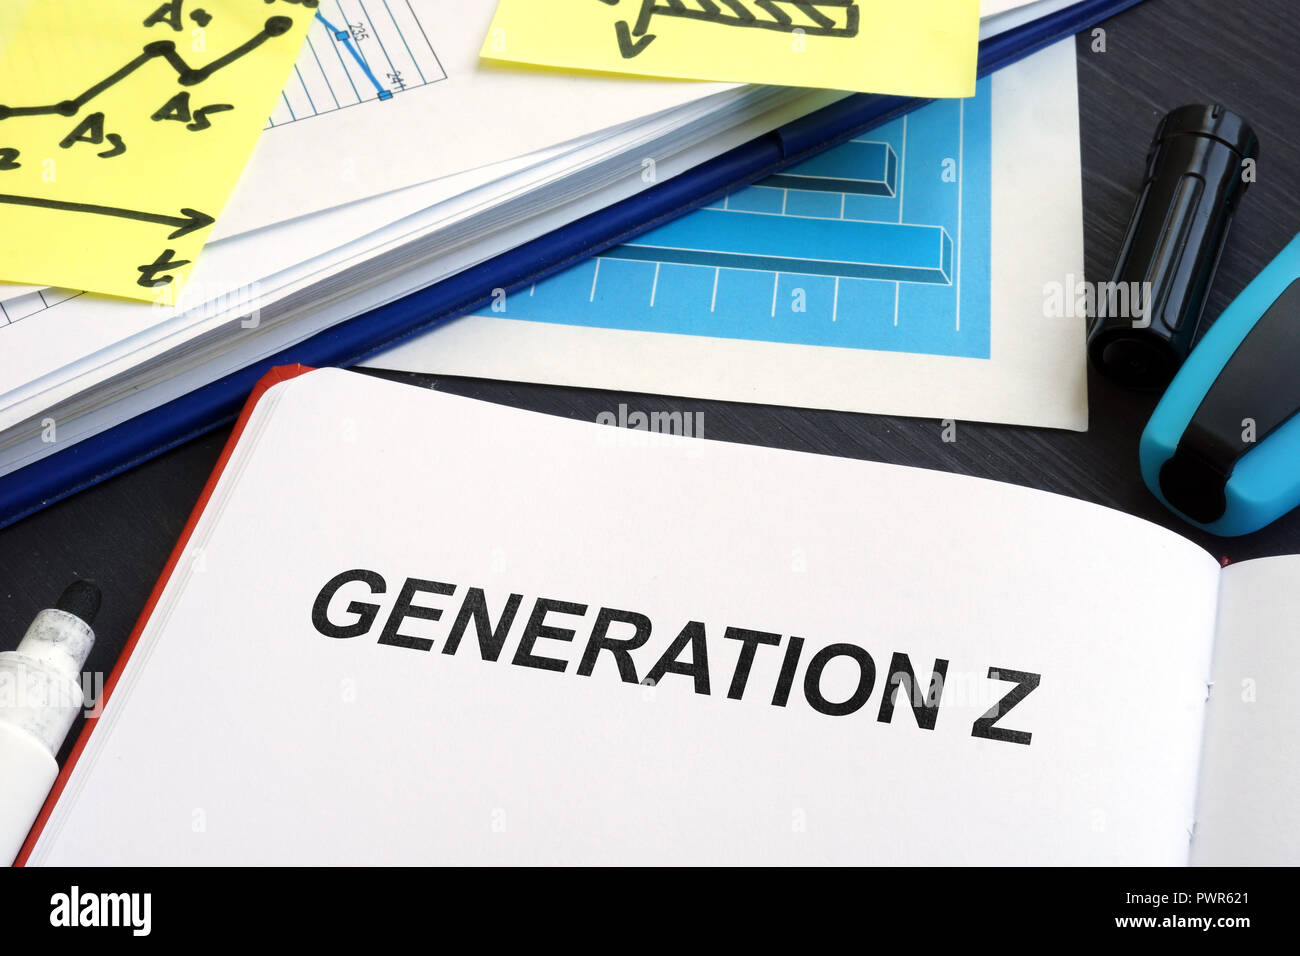 Generation Z written in a book. Marketing concept. - Stock Image